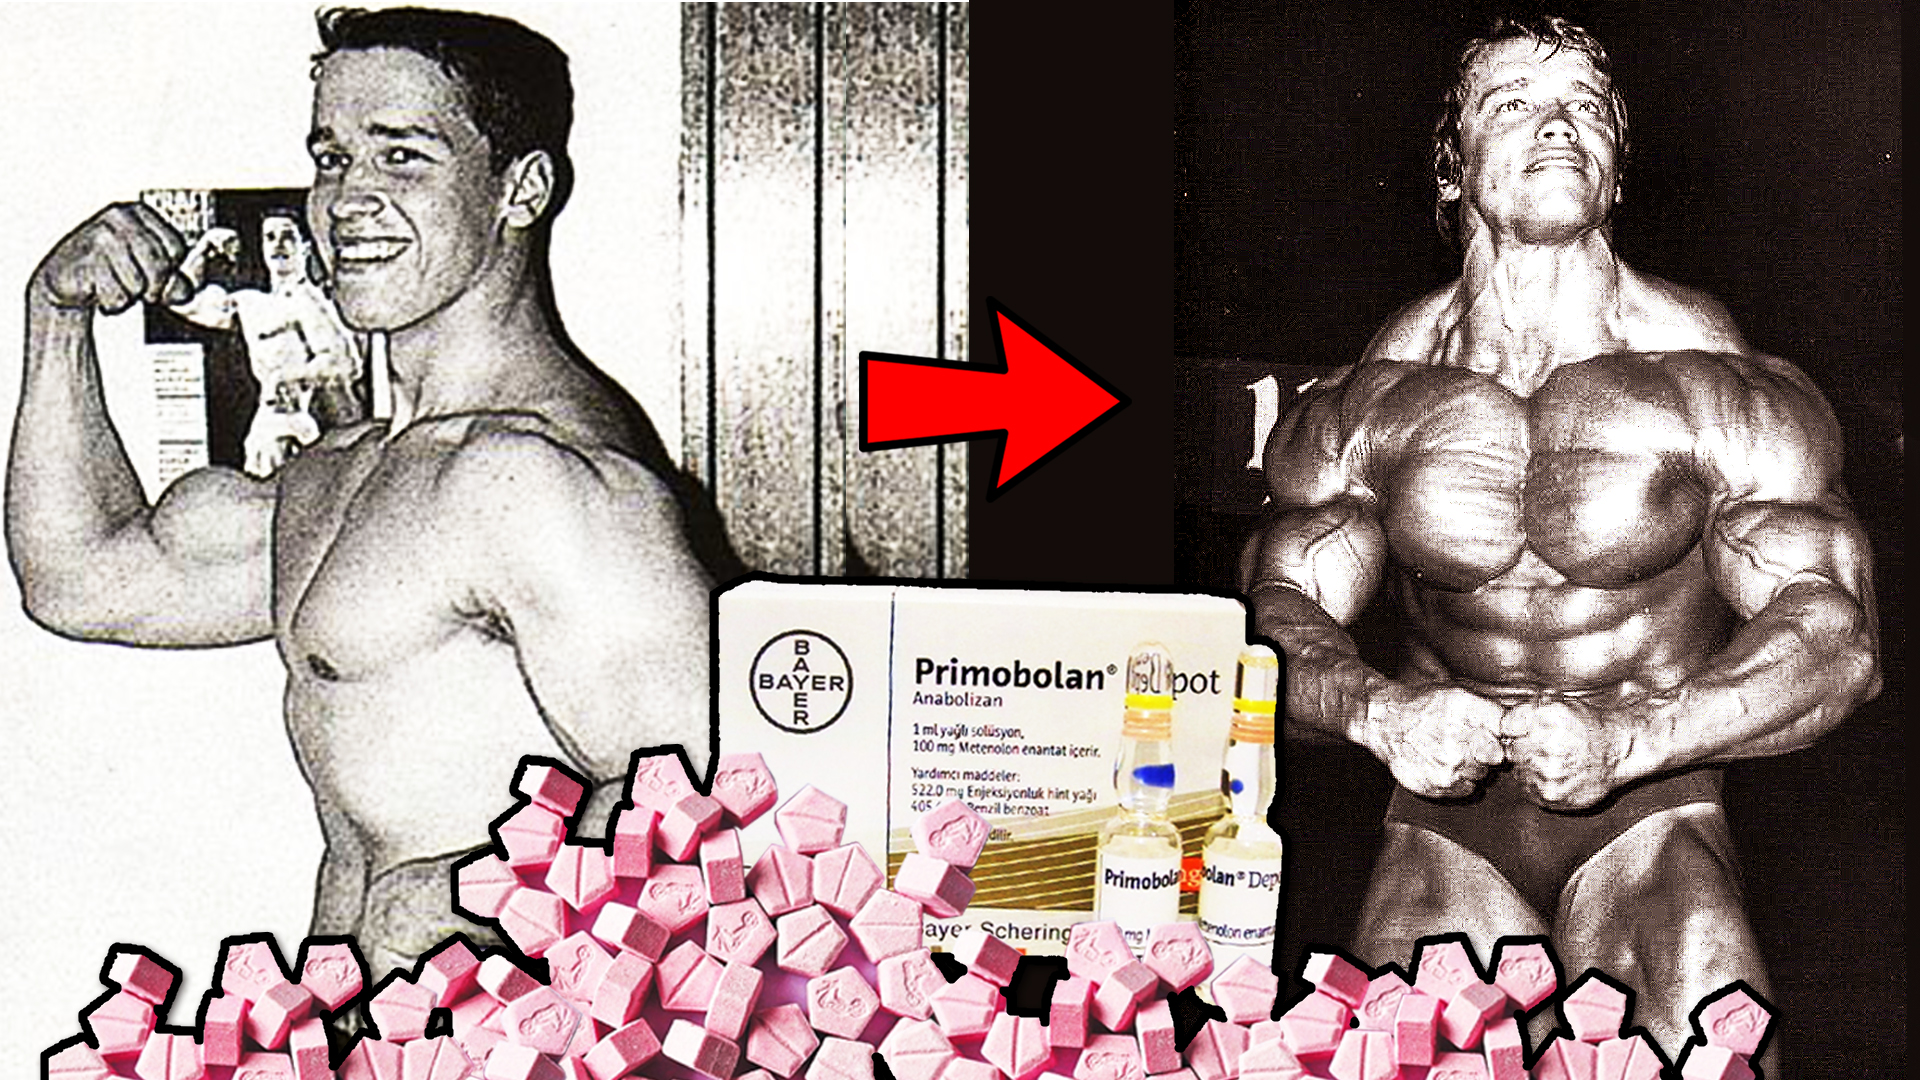 Arnold Schwarzenegger's Steroid Cycle - Dbol And Primobolan